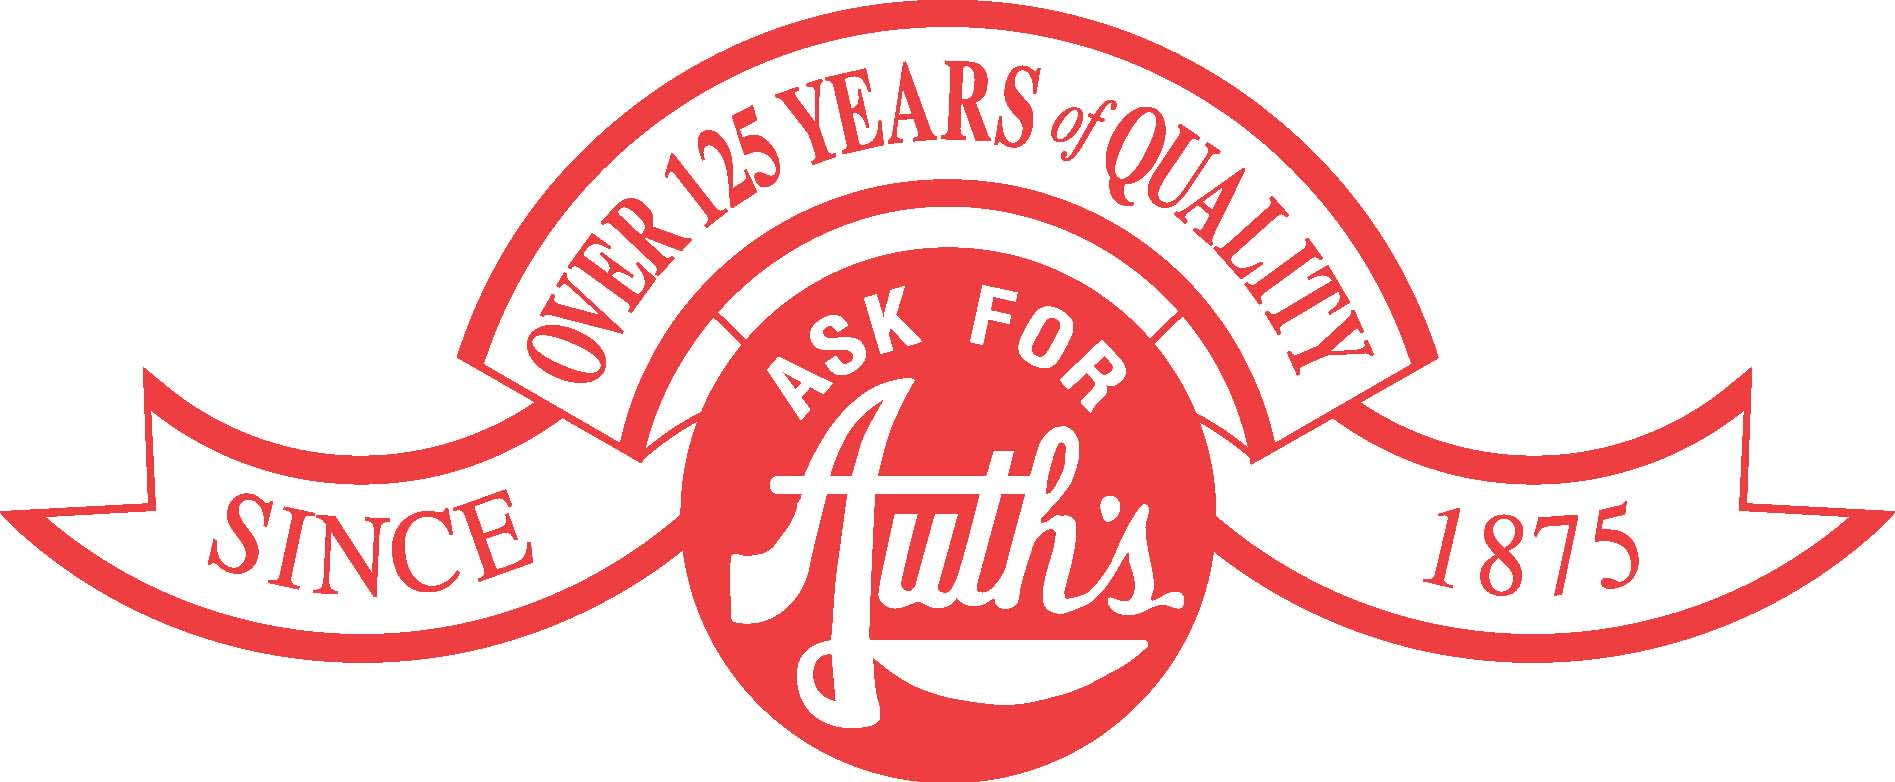 Auth Bros 125 Years